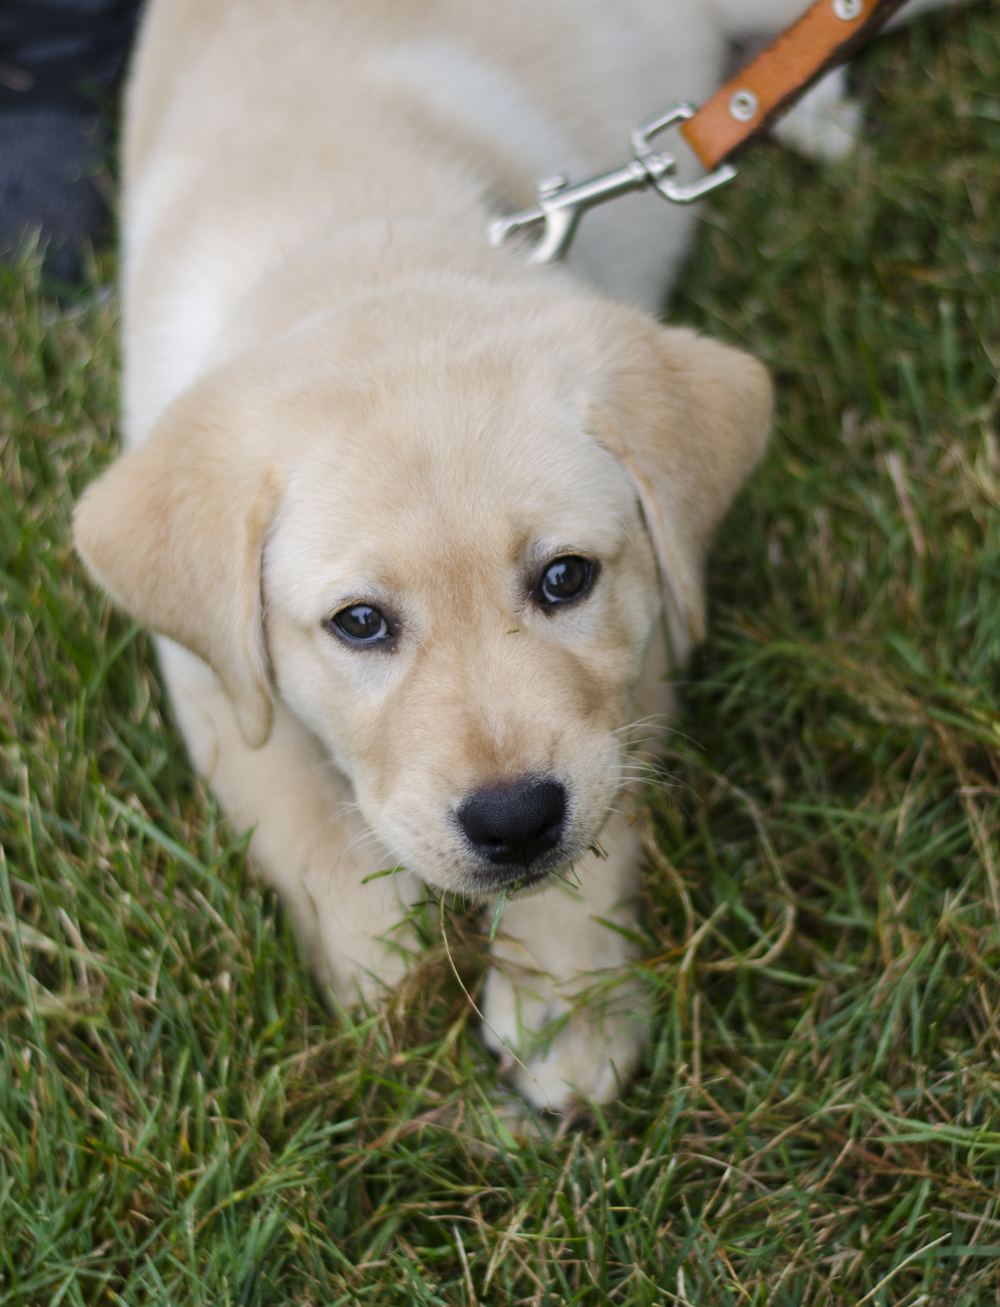 This is Charlie. He's a 10-week-old Yellow Labrador. Charlie's human, a Ball State professor, is training him to be a guide dog for the blind. He is learning how to act in different environments. Students are not allowed to pet Charlie because of the training.